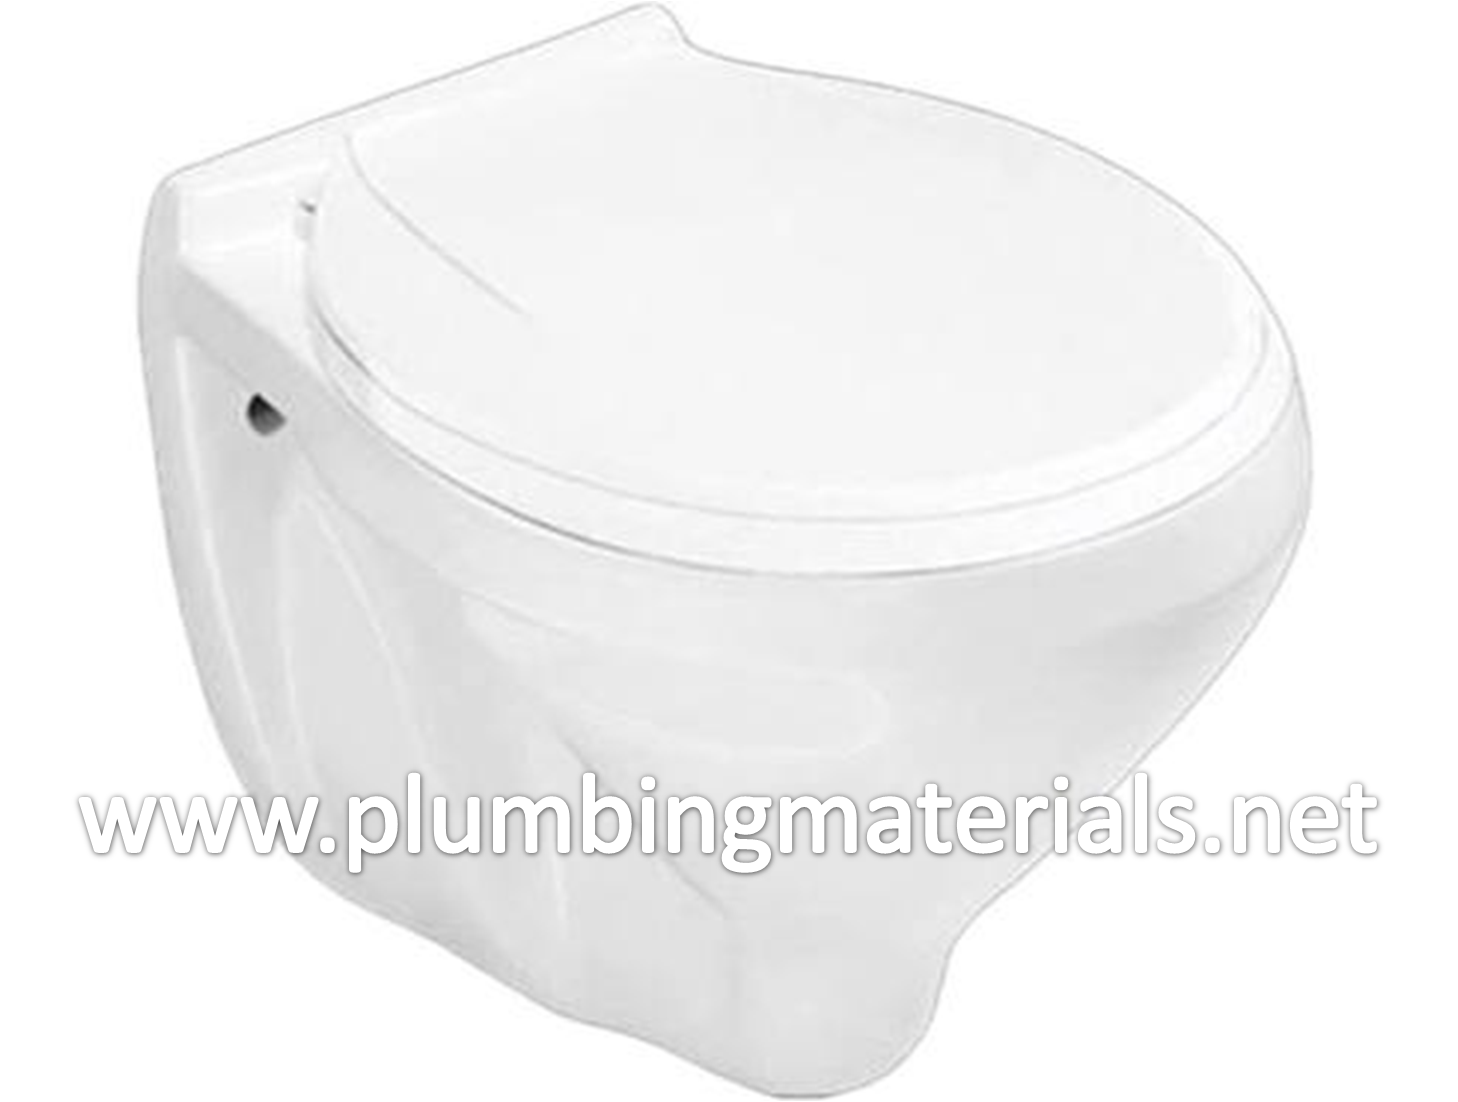 Best Hindware Water Closet Dealers in Chennai Colour : Star white